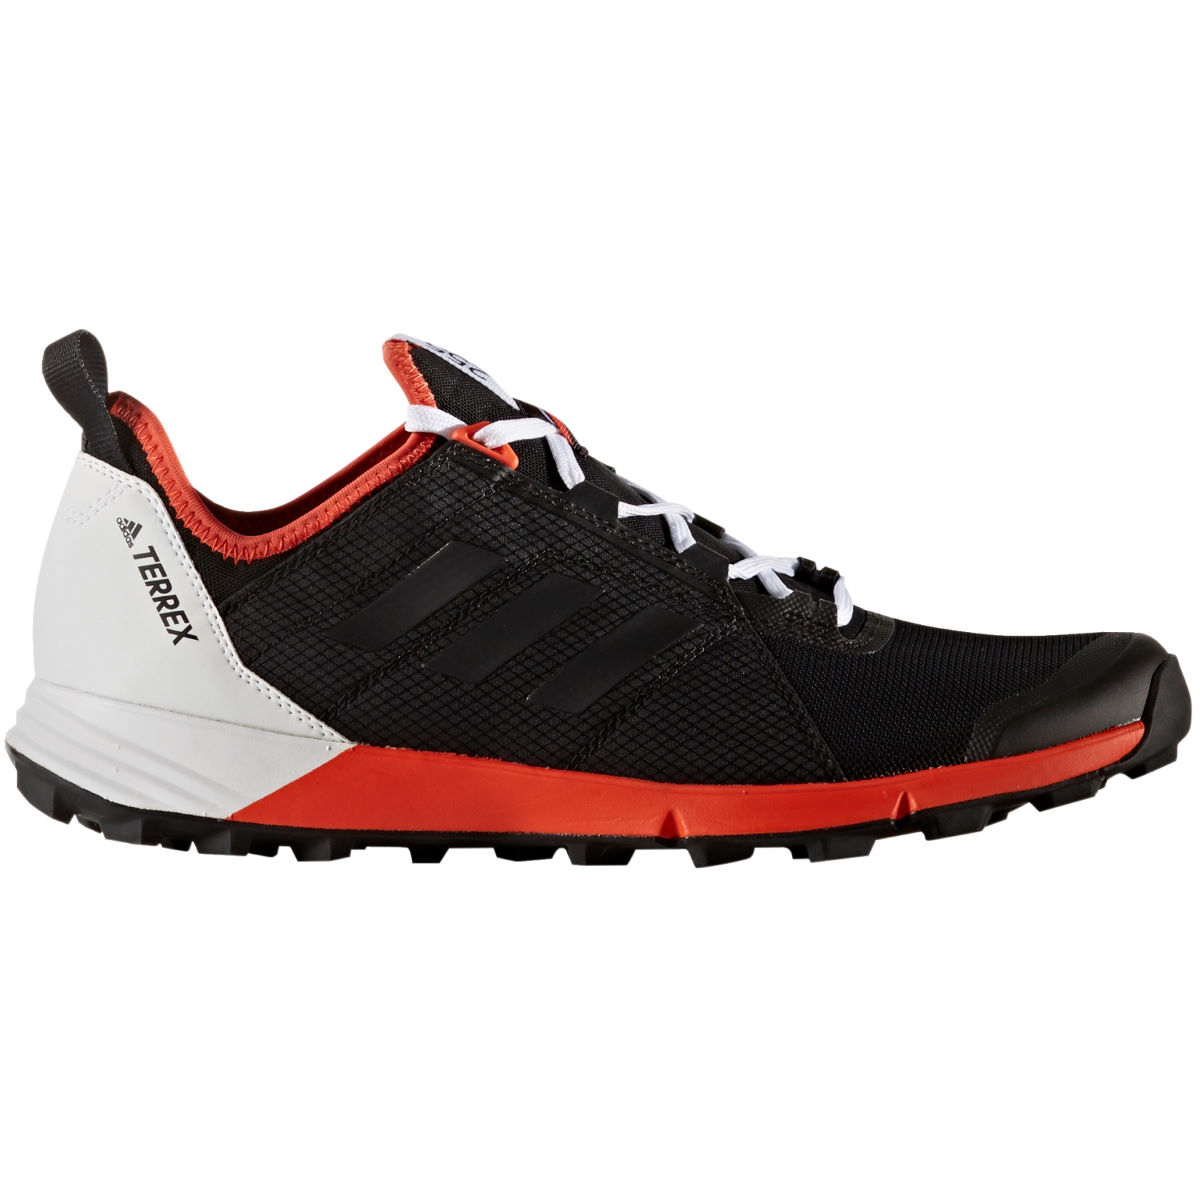 Chaussures Adidas Terrex Agravic Speed - 11,5 UK Black/Black/Energy